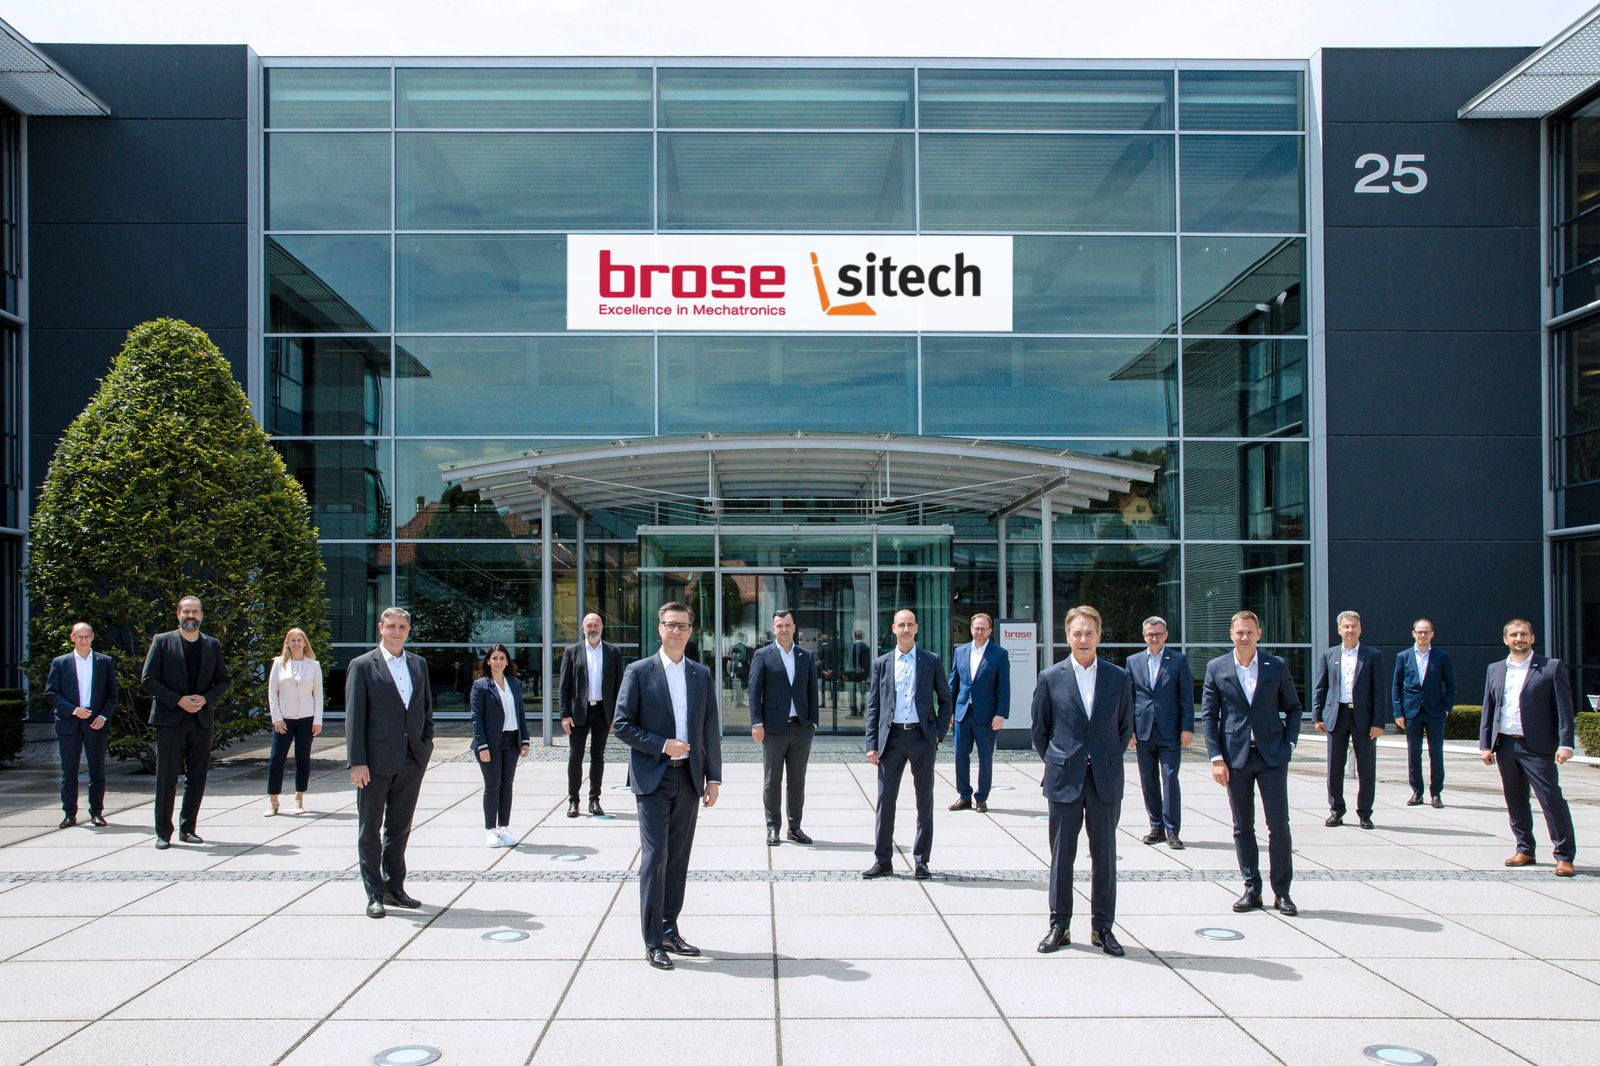 SITECH and Brose planning to set up a global system supplier for